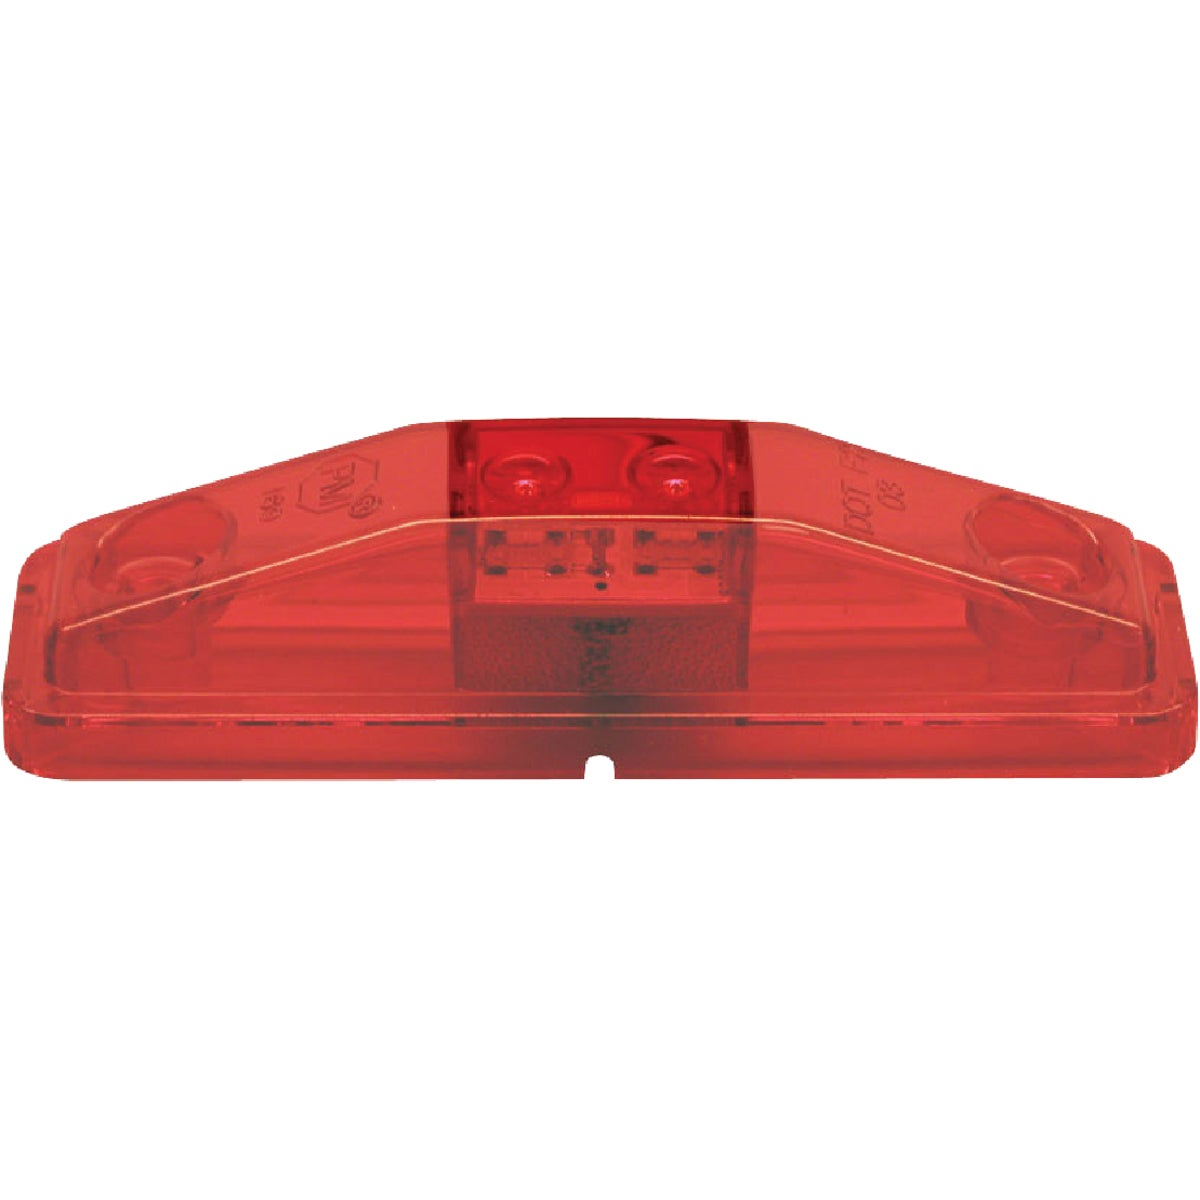 LED RED SIDE MARKER KIT - V169KR by Peterson Mfg Co